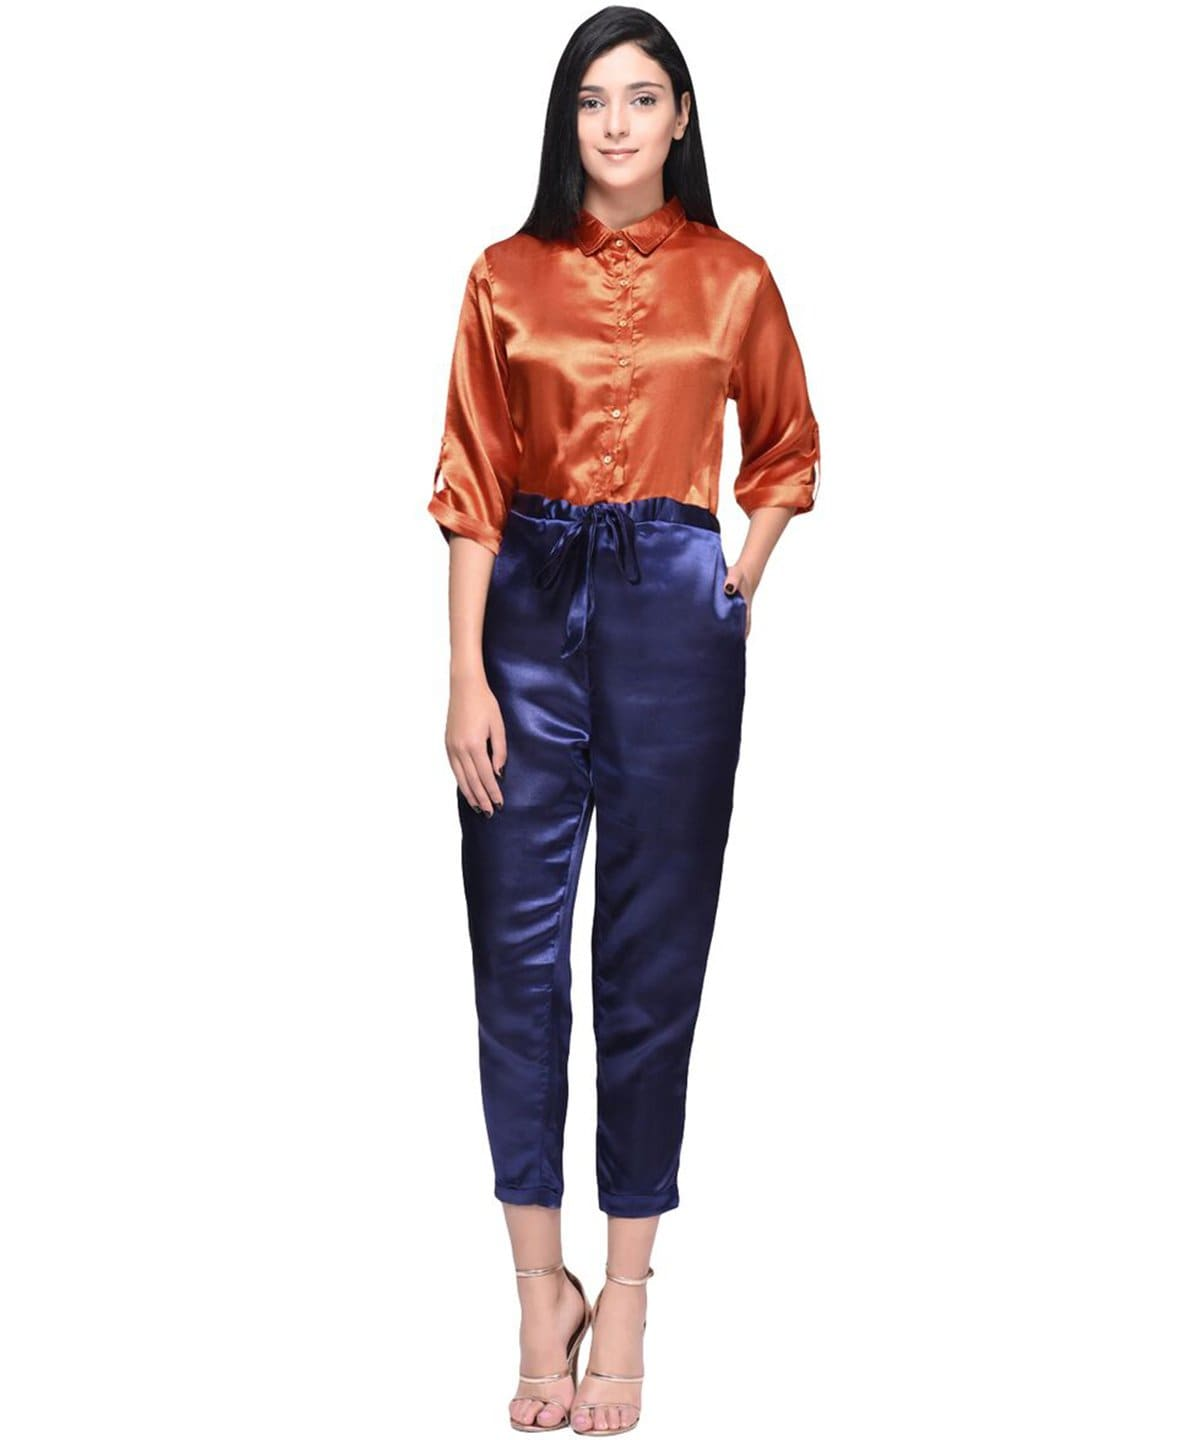 Satin Orange and Blue Buttoned Jumpsuit - Uptownie